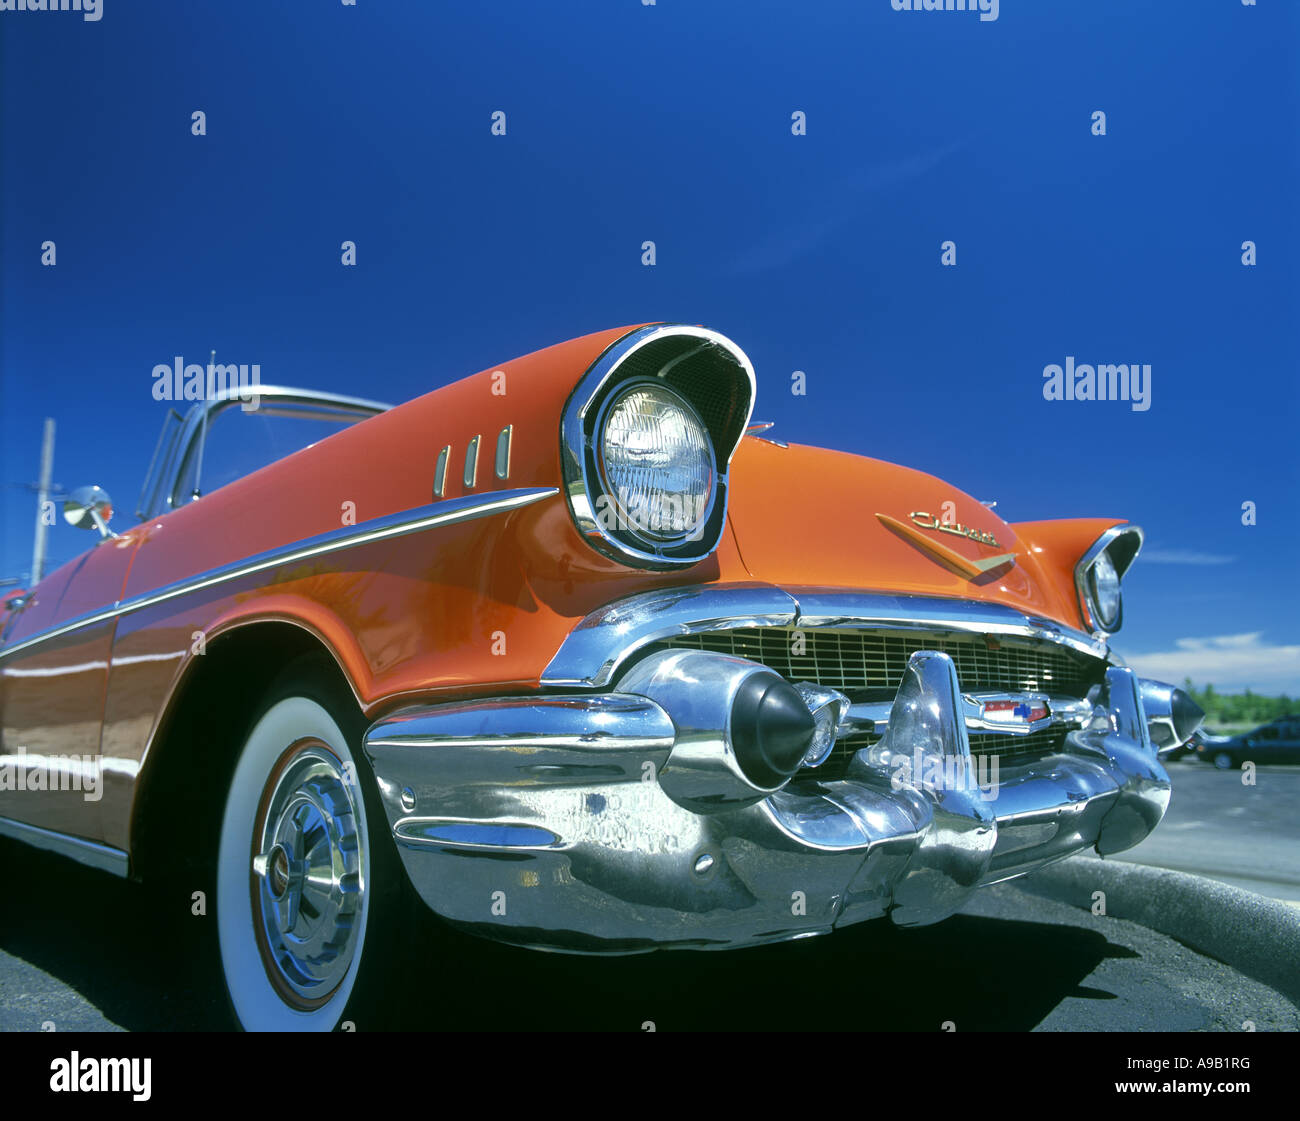 1957 CHEVROLET BELAIR CONVERTIBLE   Stock Image